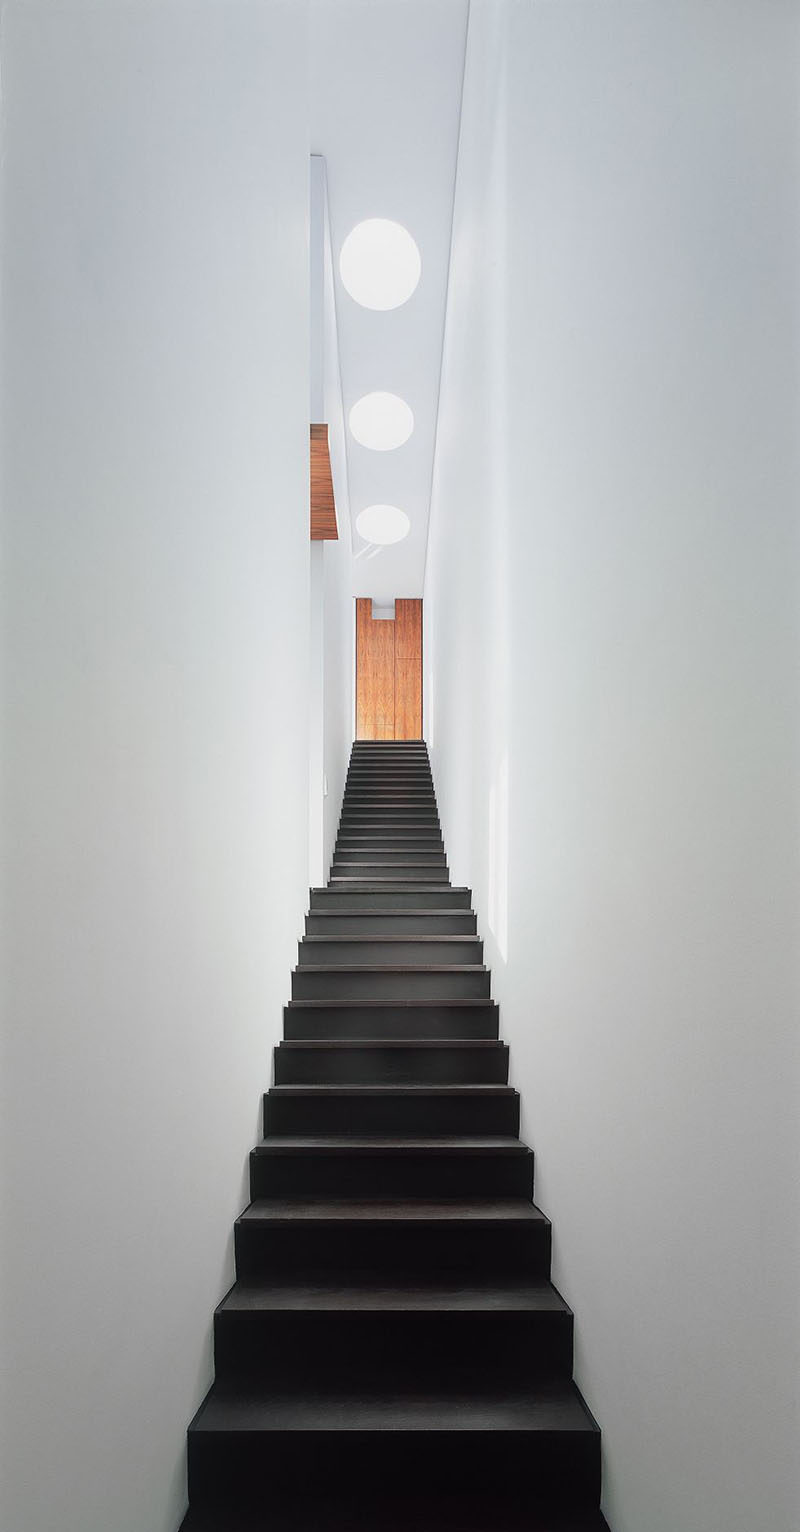 This single-flight stair way, which is lit from above, connects all three levels of this house.